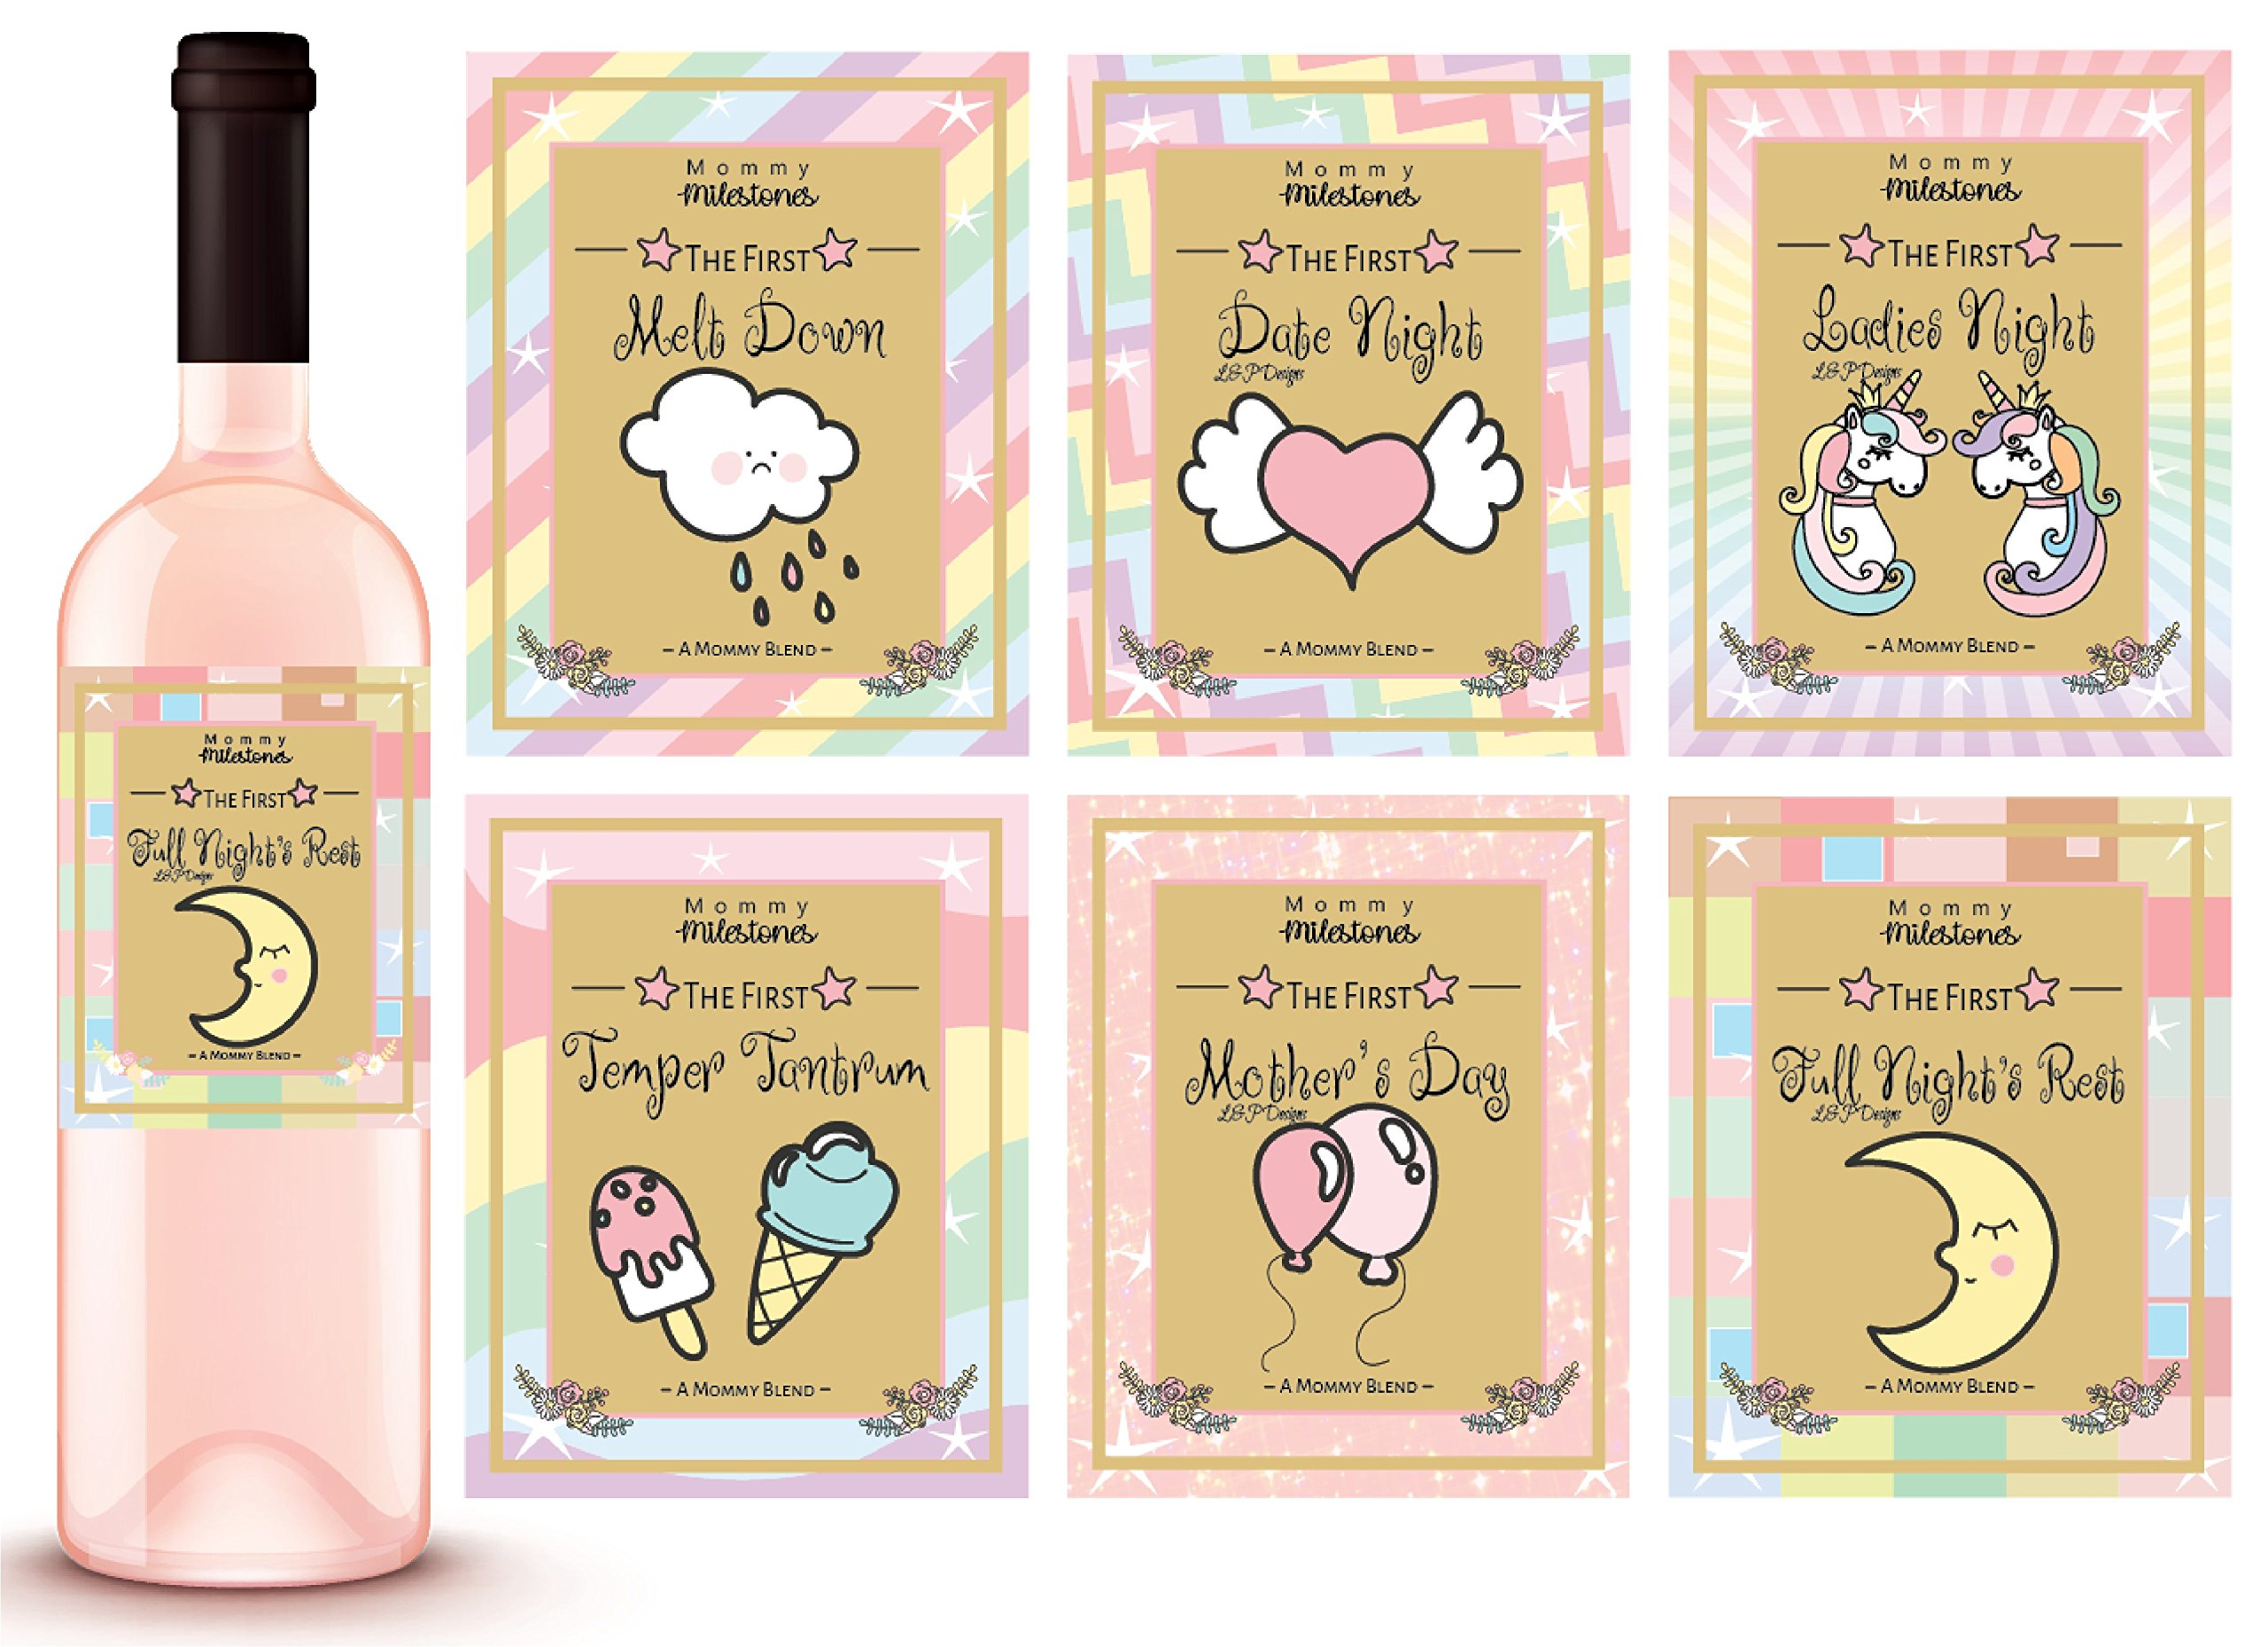 6 Unicorn Mommy Milestone Wine Labels or sticker Gifts, New Mom Gifts Ideas, Baby Shower Gift Idea, Mom To Be Gifts, Amazing Mom Gifts, Gift For New Mom